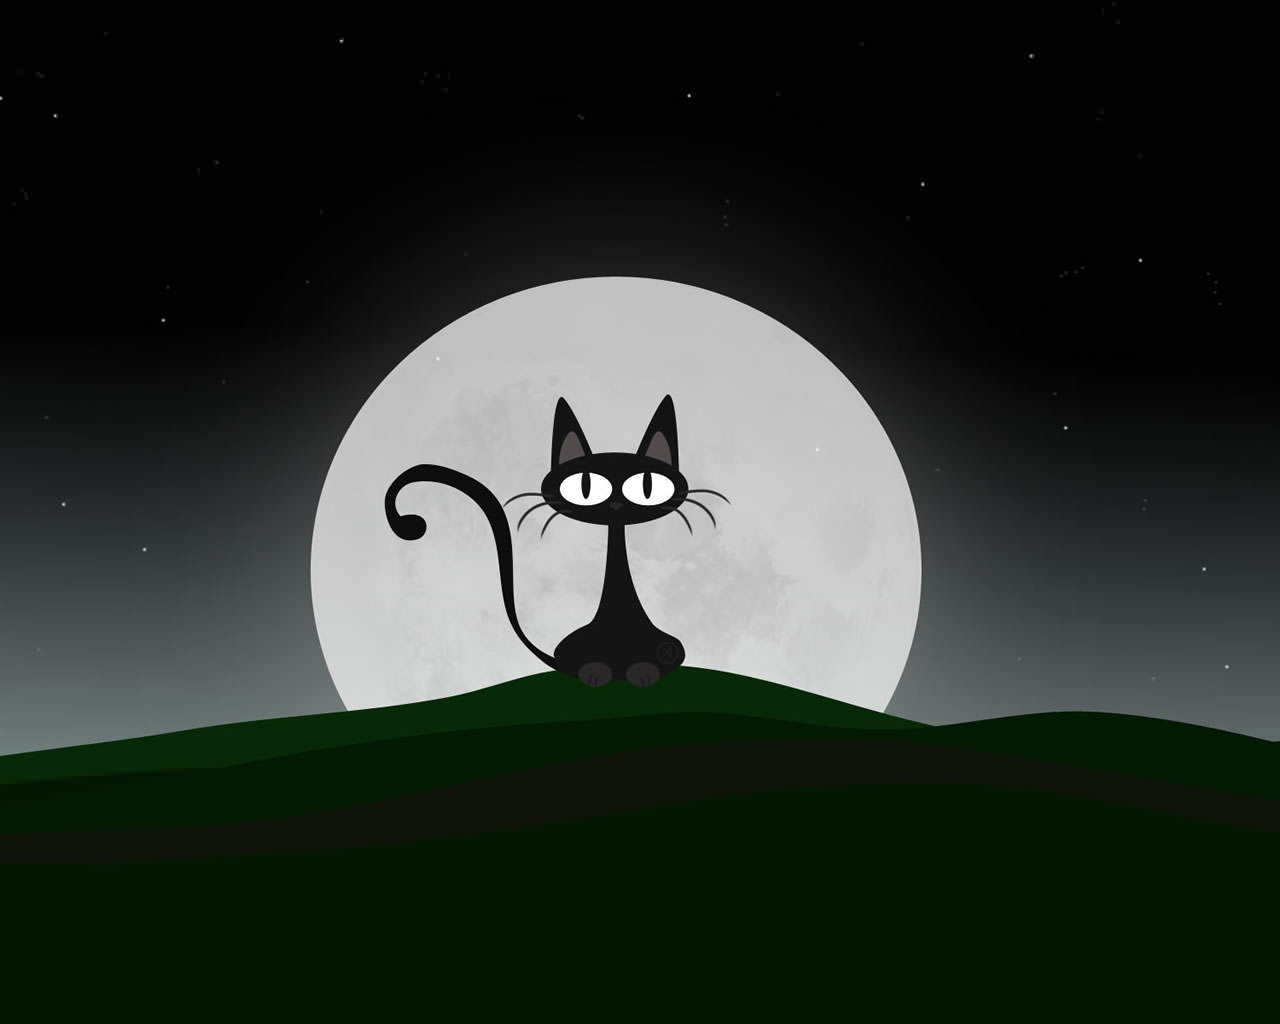 Cat cartoon wallpaper 1280x1024 - Cat wallpaper cartoon ...